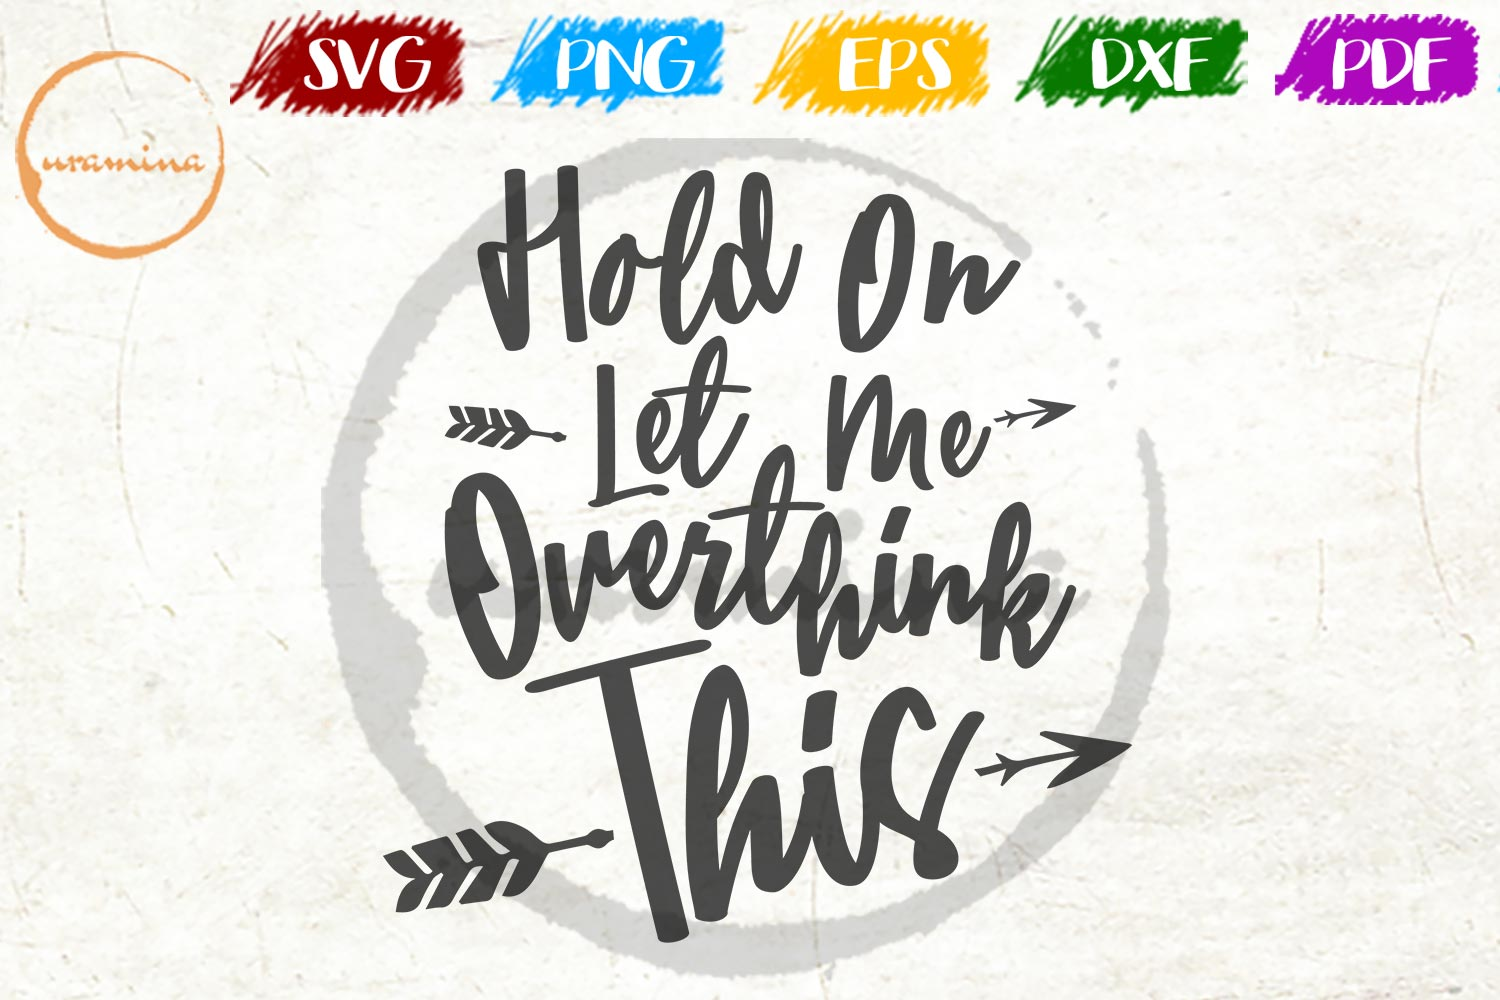 Download Free Hold On Let Me Overthink This Graphic By Uramina Creative Fabrica for Cricut Explore, Silhouette and other cutting machines.